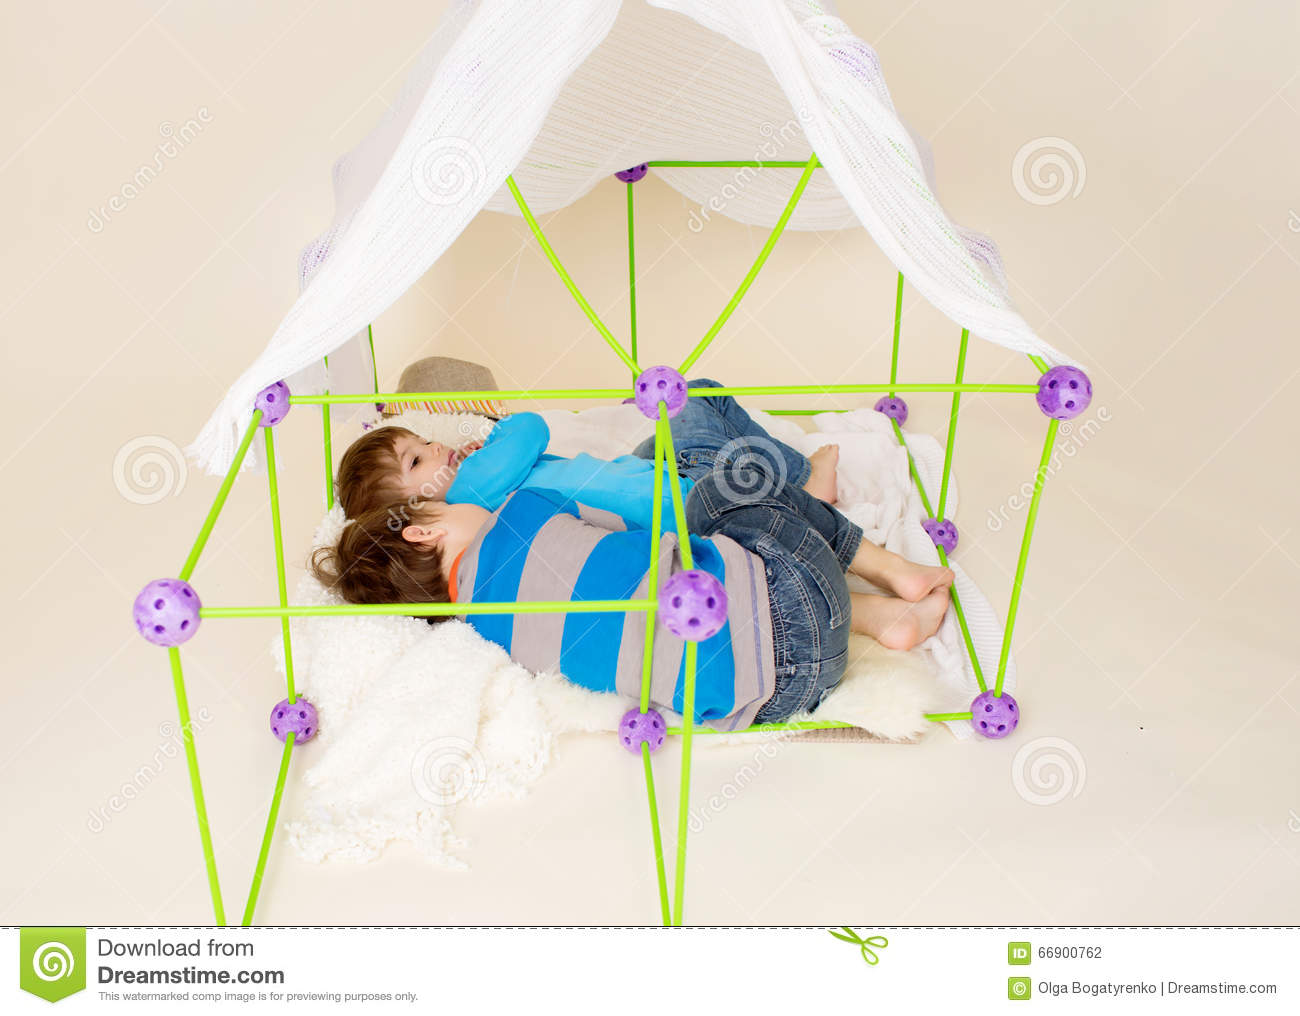 Kids children playing with a tent or fort made out of blankets imagination pretend play concept & Kids Playing With Tent Pretend Fort Stock Photo - Image of tent ...